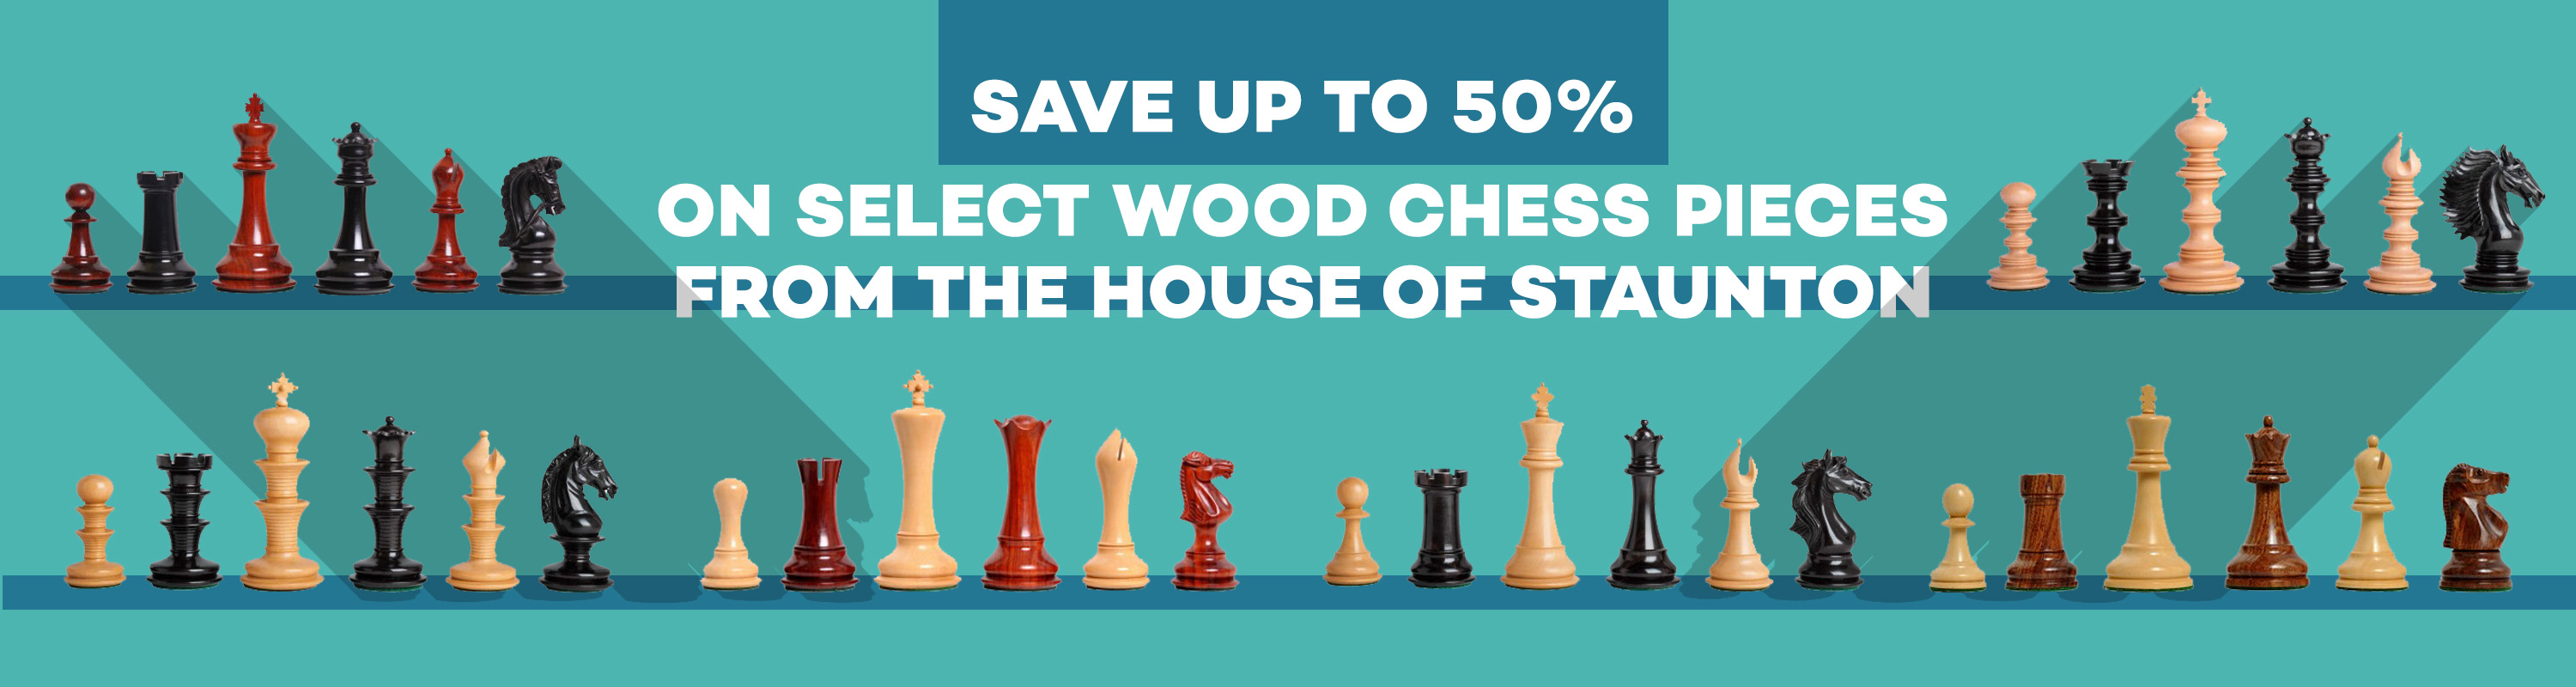 Save up to 50% on select wood chess pieces from The House of Staunton